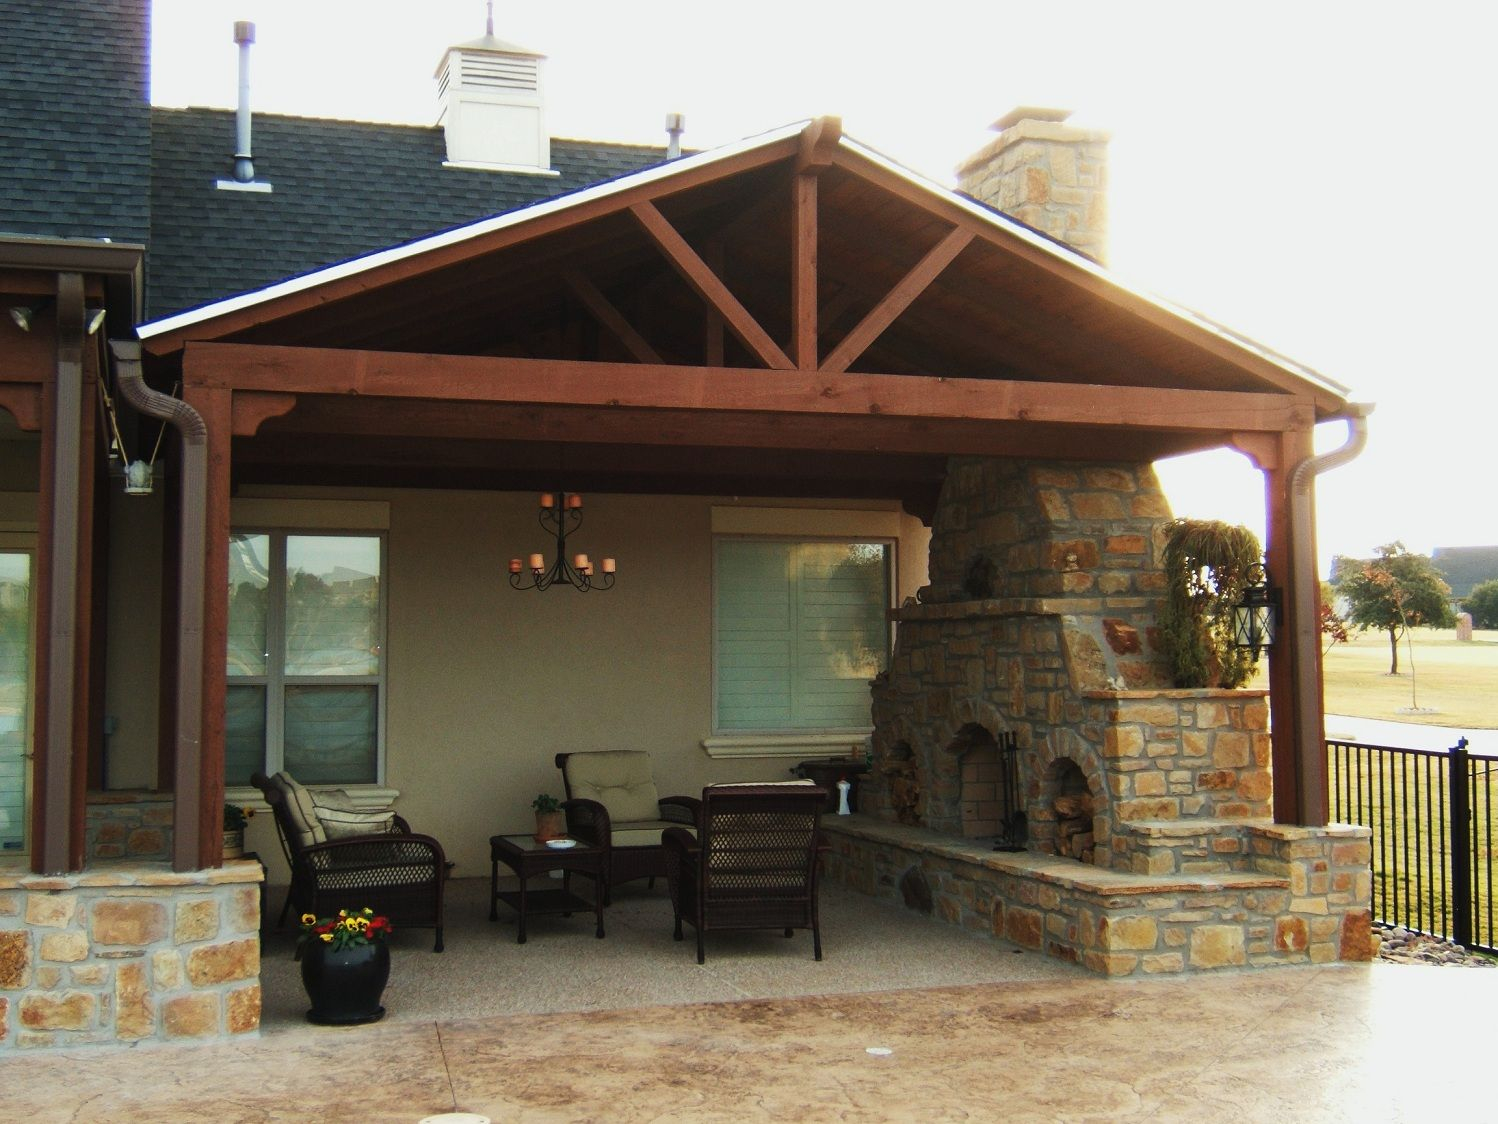 Covered Porch Ideas To Make A Livable Room Jos Nyc Outdoor Room with regard to 11 Clever Concepts of How to Build Covered Patio Ideas For Backyard